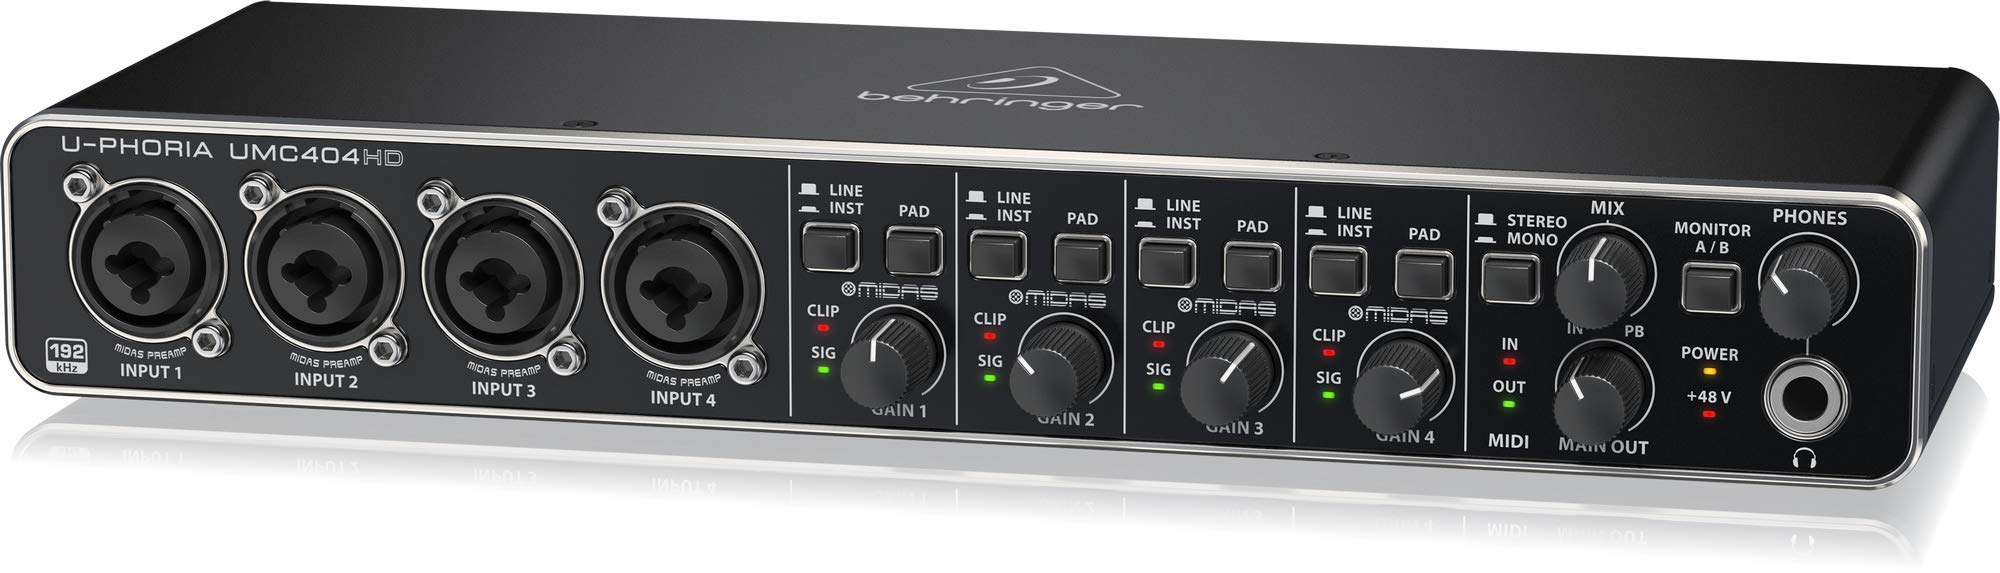 BEHRINGER UMC 404HD Audiophile 4X4 24-Bit/192 KHz USB Audio/Midi Interface with Midas Mic Preamplifiers Black by Behringer